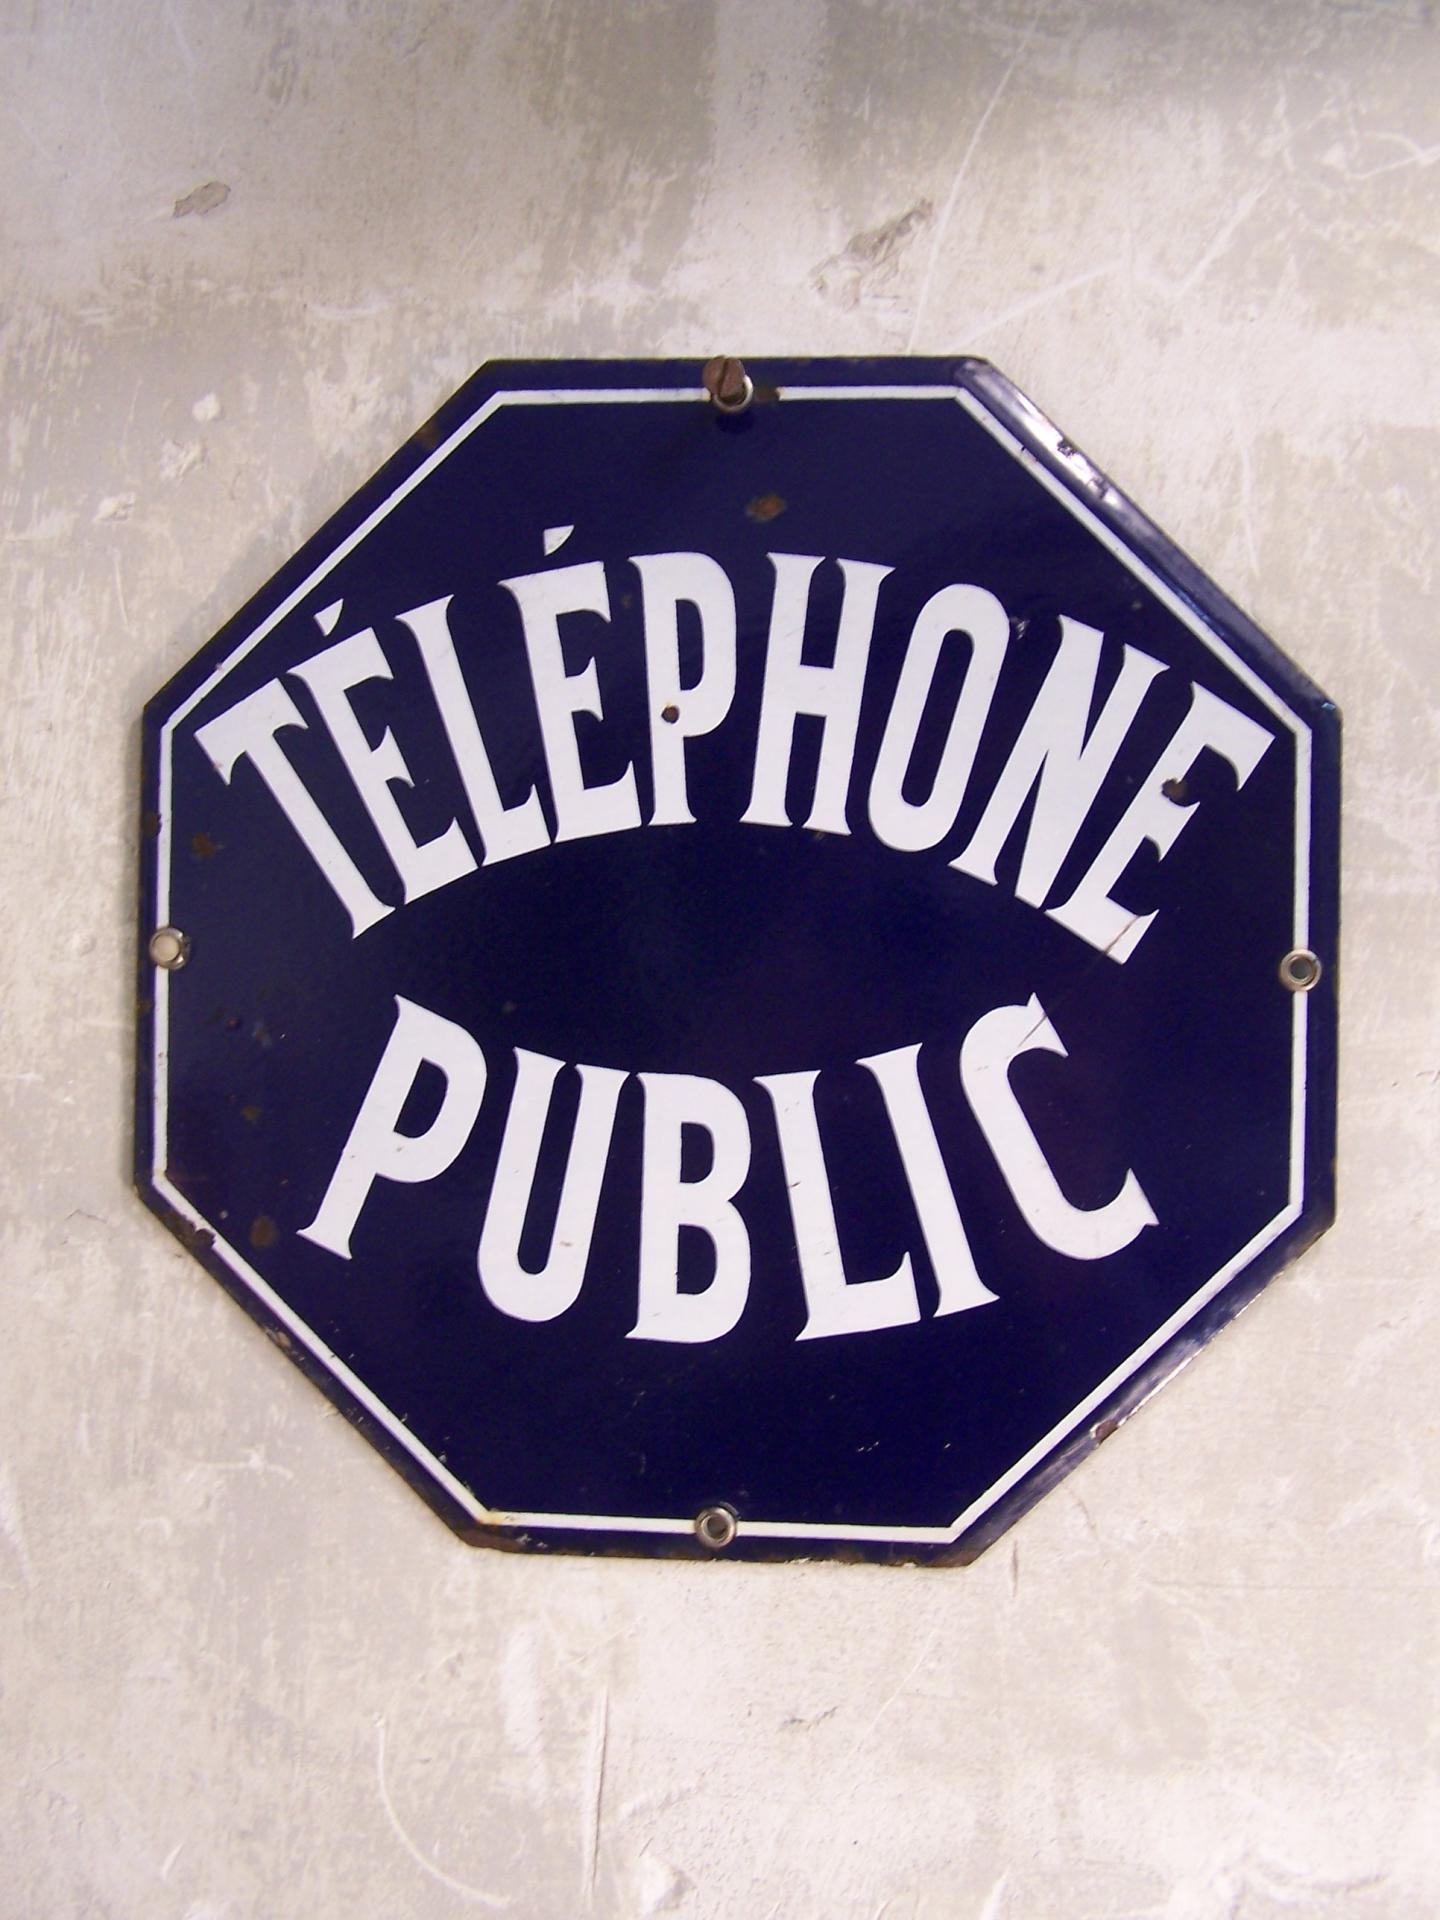 Ancienne plaque maill e telephone public for Plaque emaillee ancienne cuisine